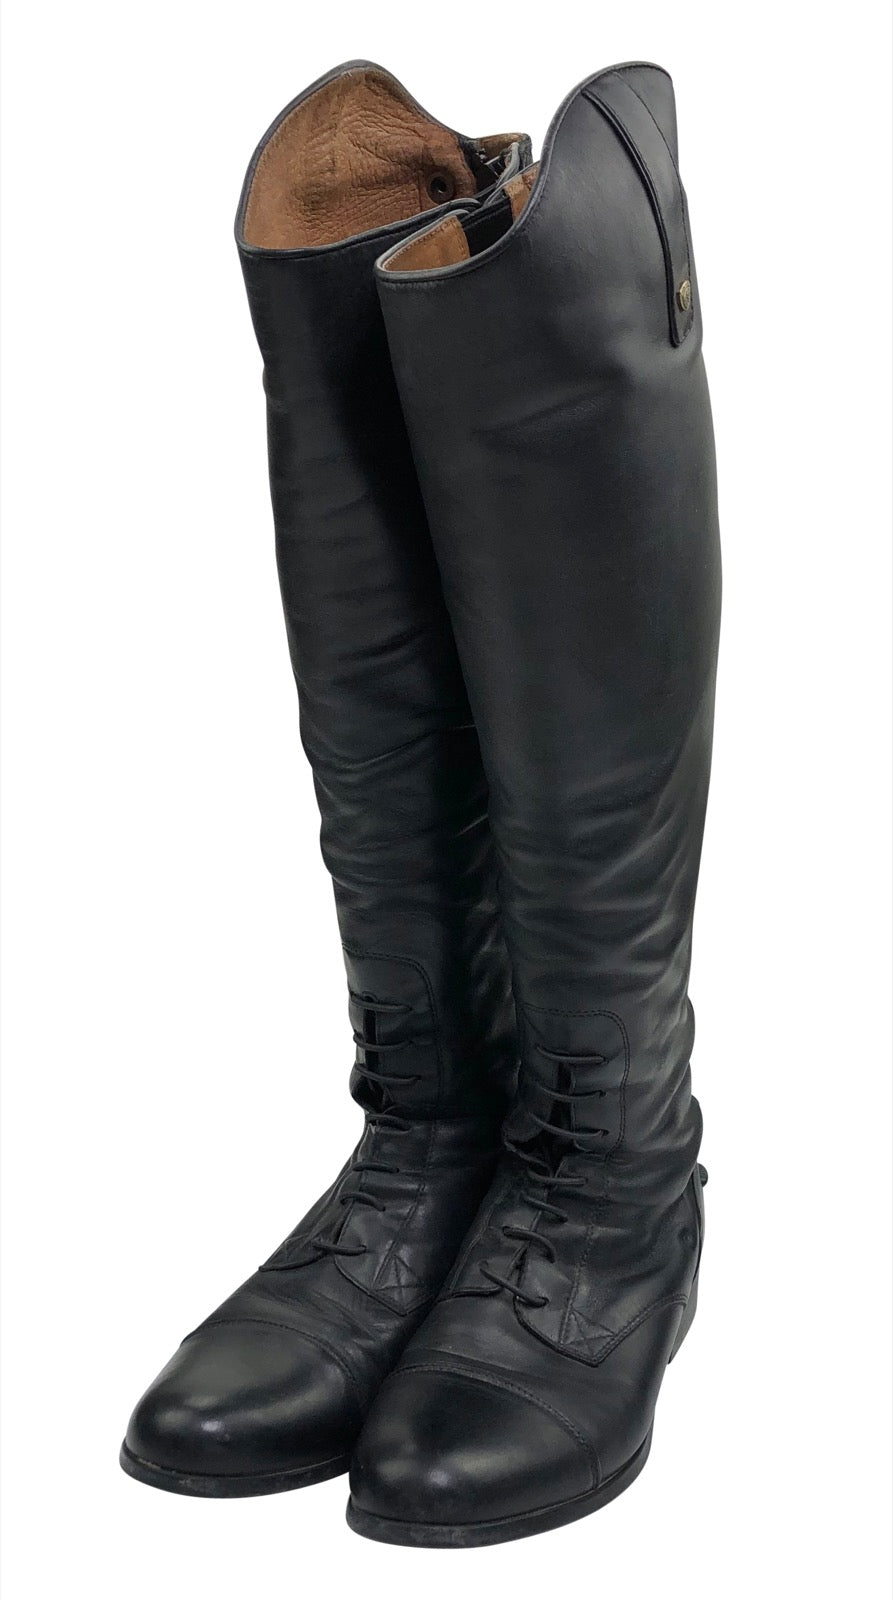 Standing up Ariat Heritage Contour Field Zip Tall Riding Boot in Black